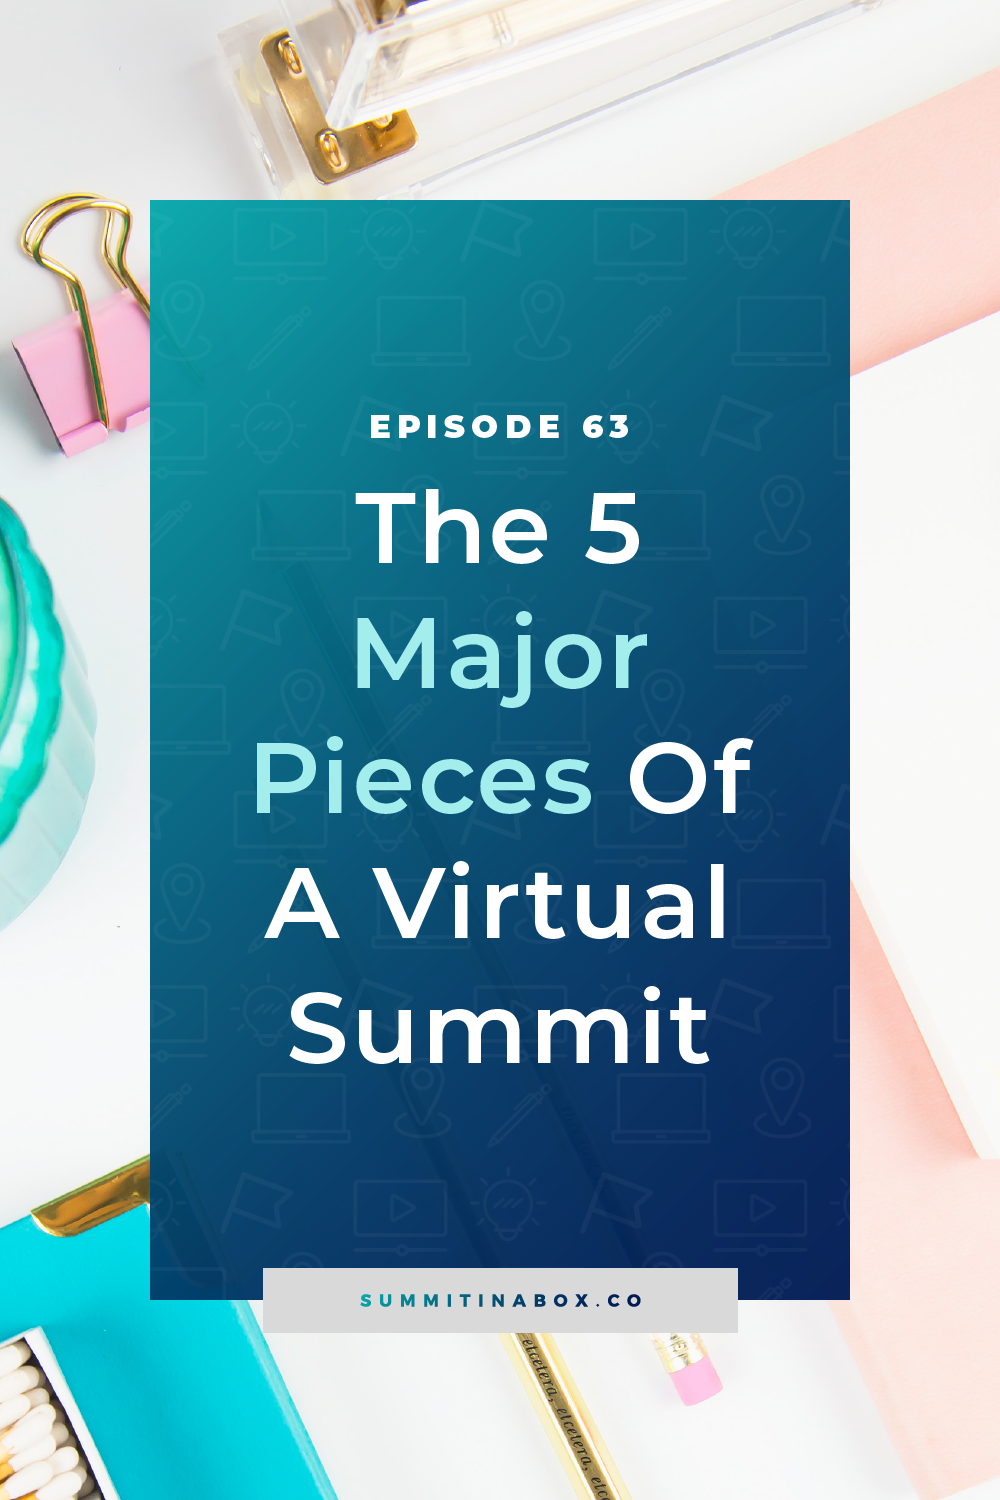 Let's cover the 5 major pieces of a virtual summit including the basics, my top tips, and where you can learn more about each one.